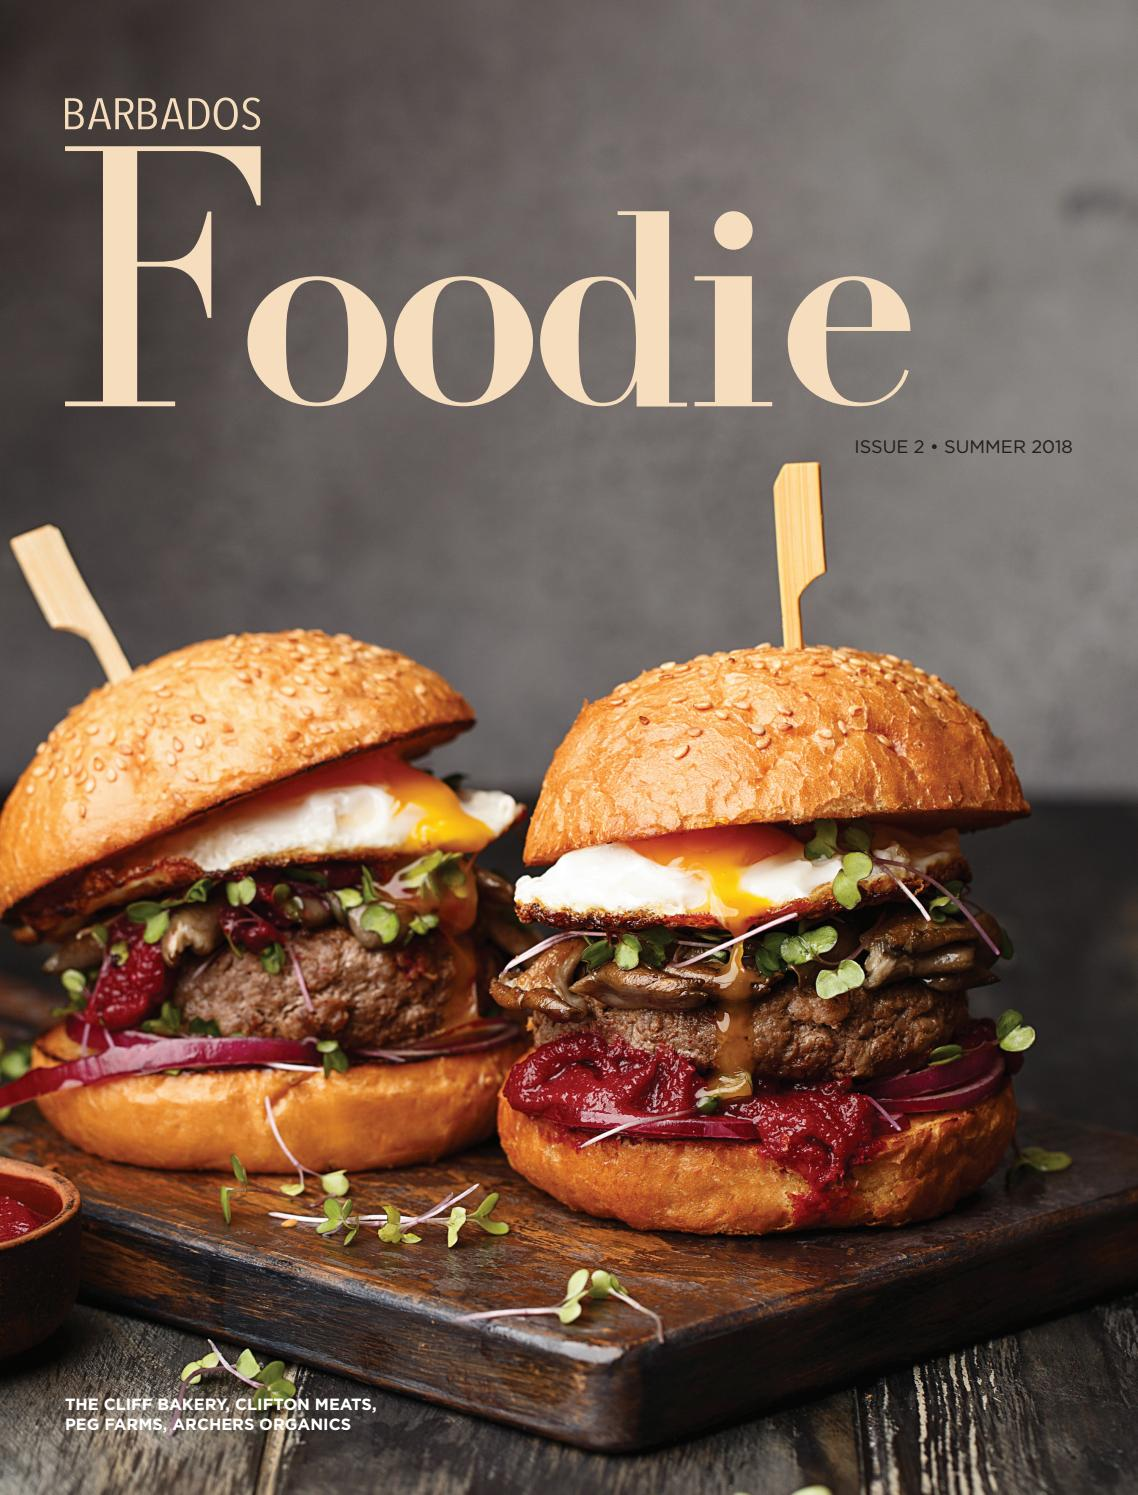 Barbados Foodie - Issue 2 by Barbados Foodie - issuu